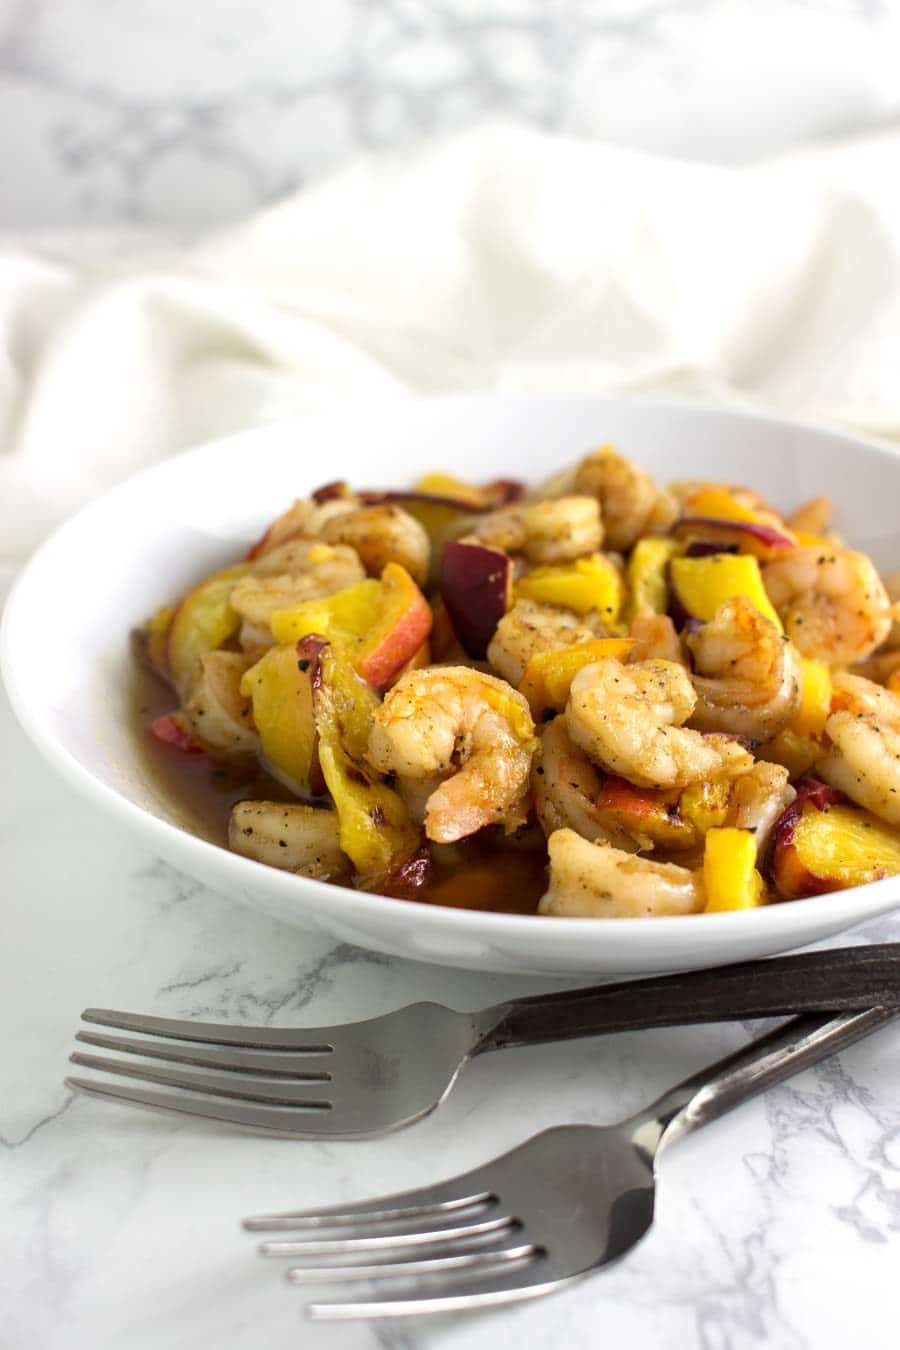 Maple-Glazed Peach Shrimp recipe from acleanplate.com #paleo #aip #autoimmuneprotocol